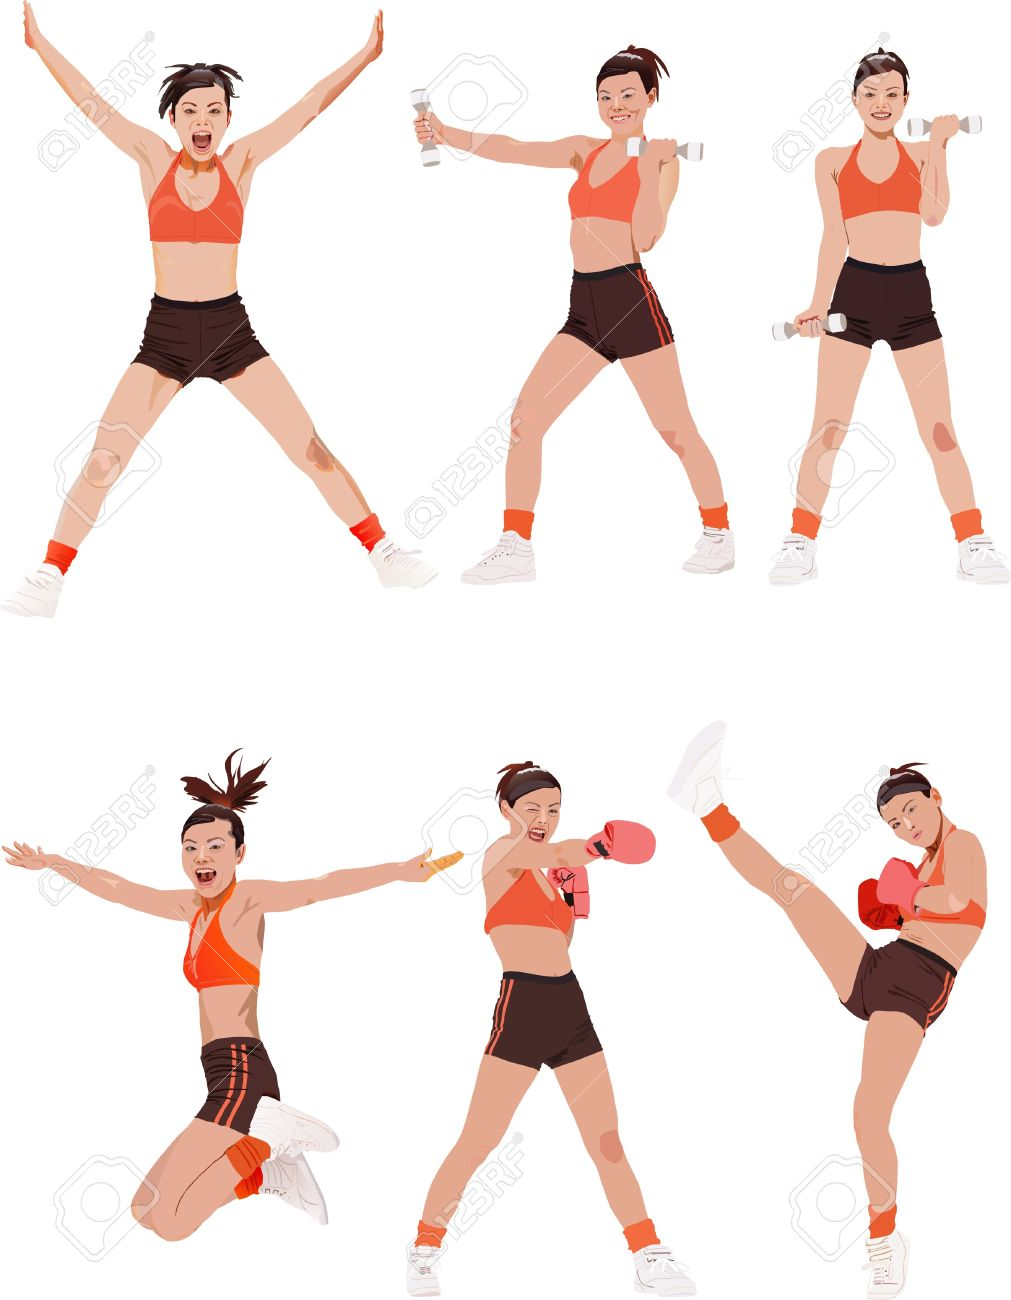 Woman fitness colored vector illustrations collection - 10815372